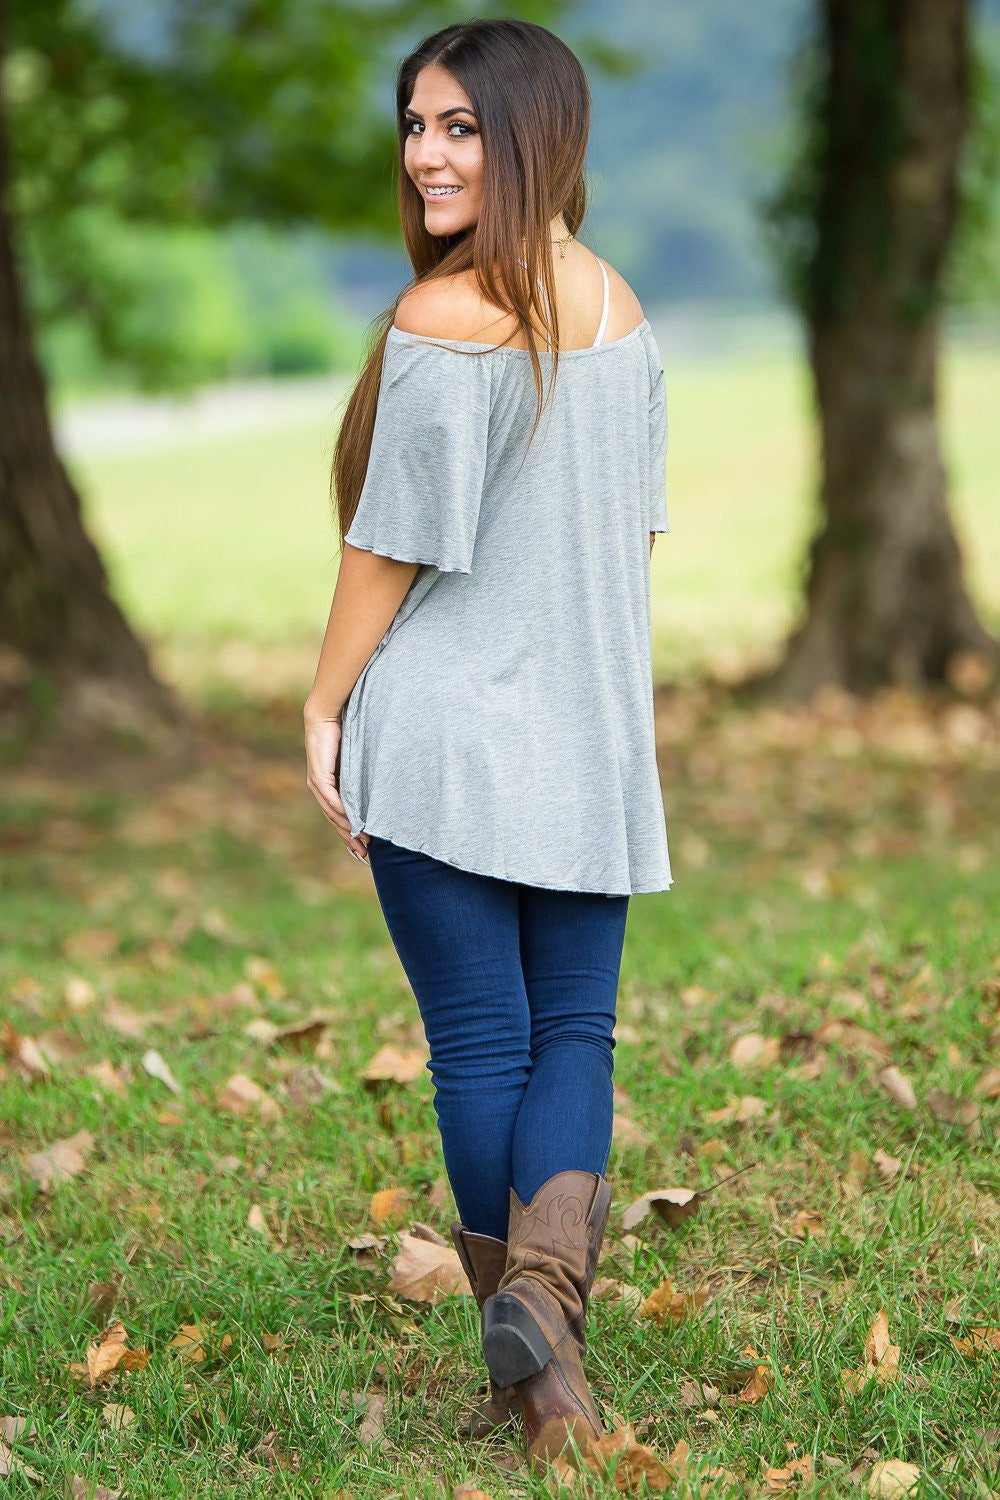 Off The Shoulder Short Sleeve Piko Top - Heather Grey - Piko Clothing - 2